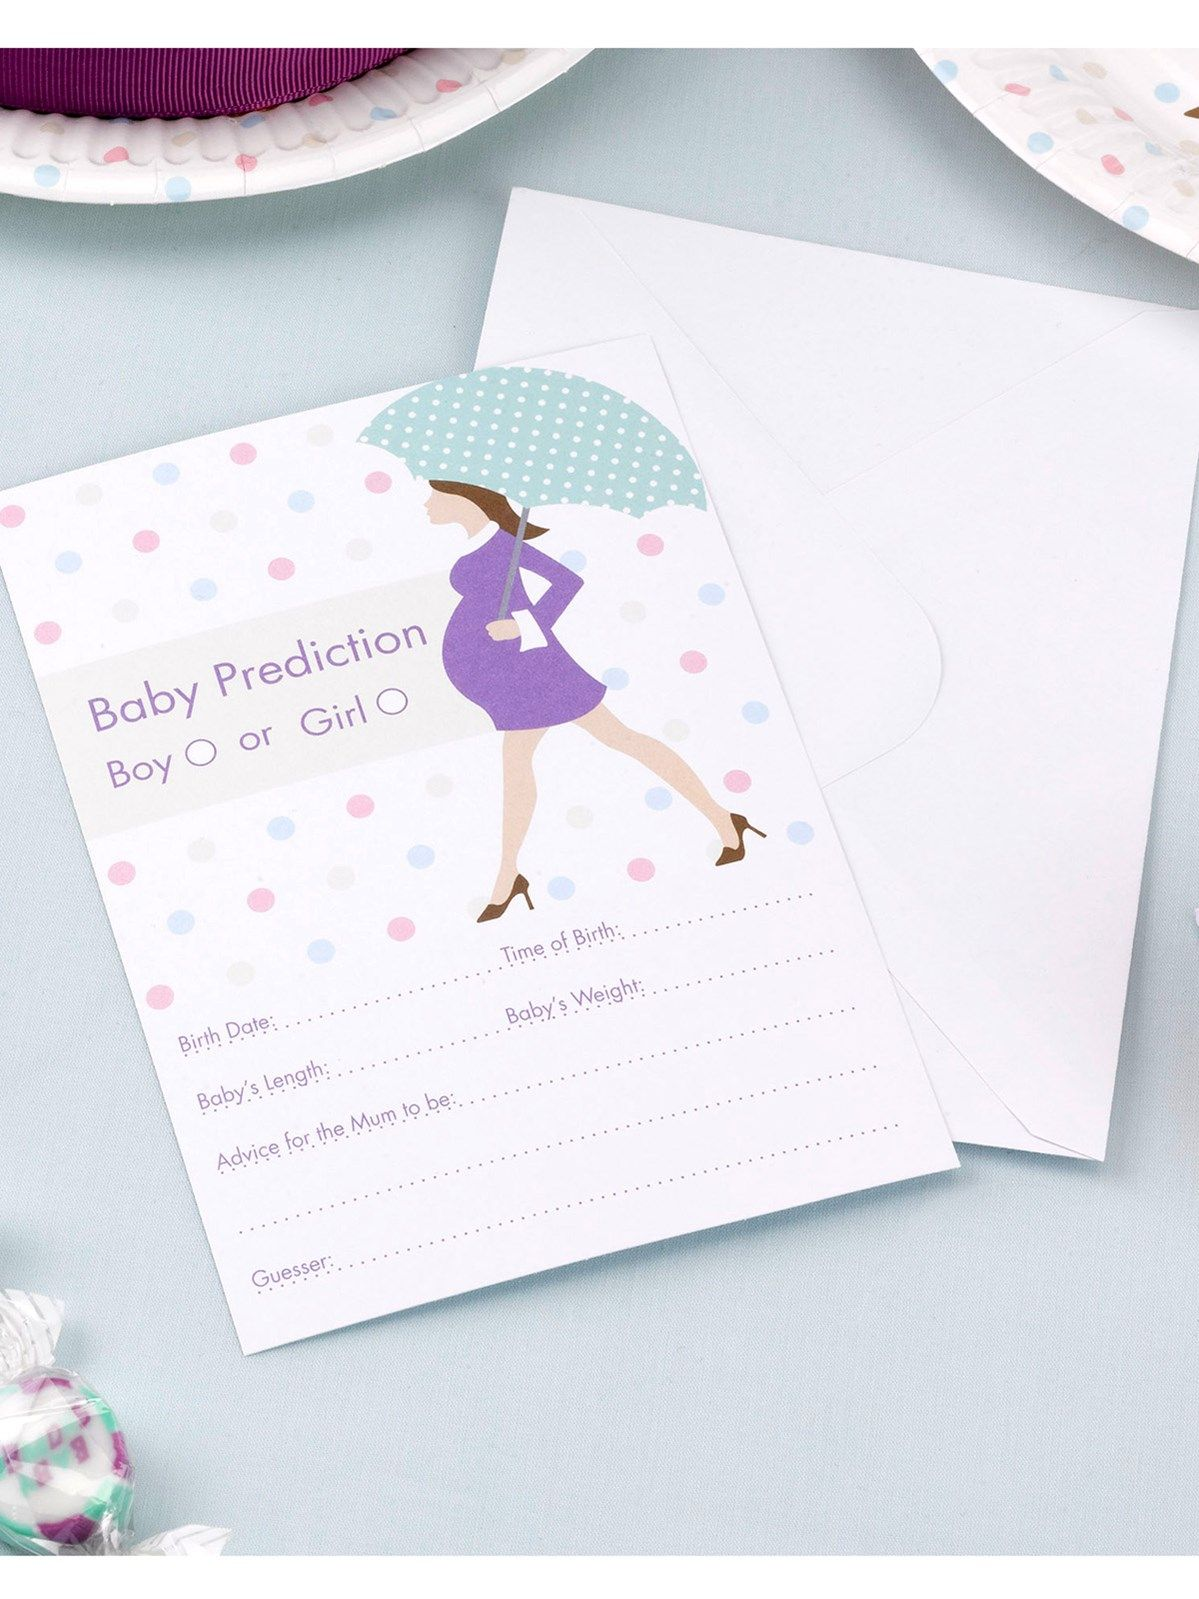 Showered with Love Baby Shower Baby Prediction Cards 10pk